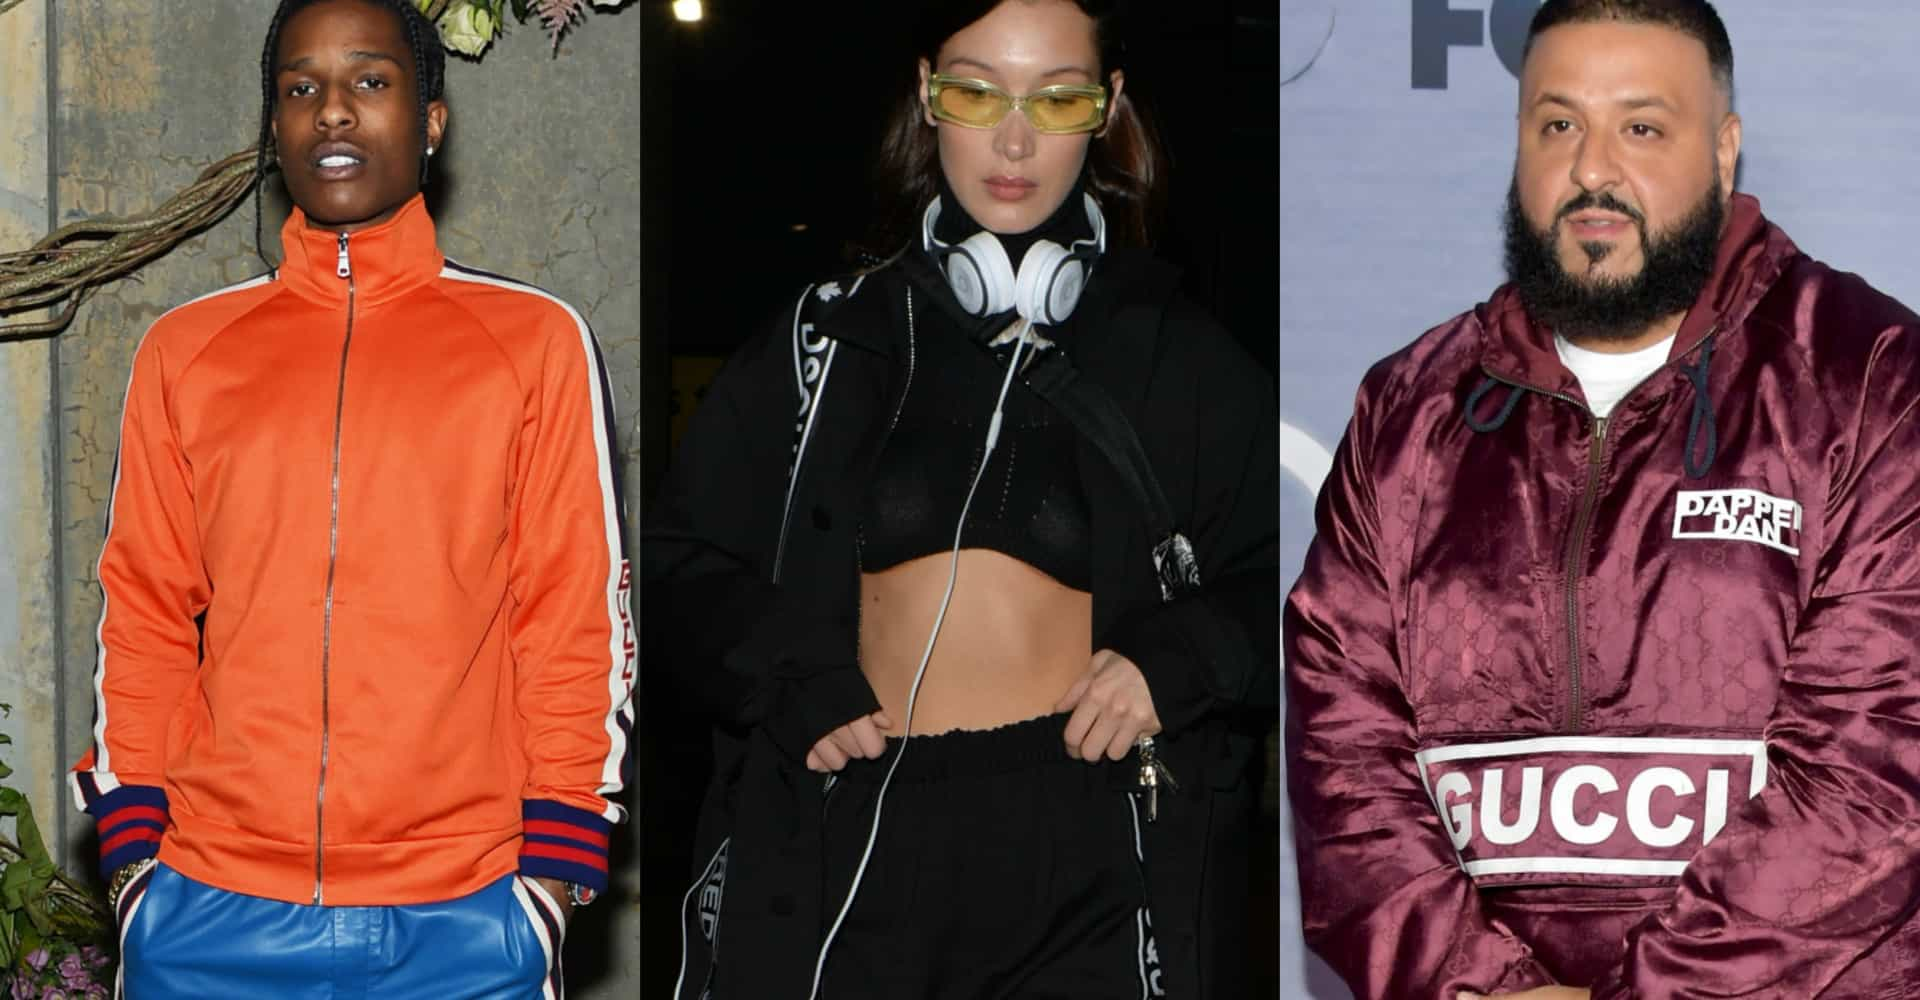 The celebrities making tracksuits fashionable